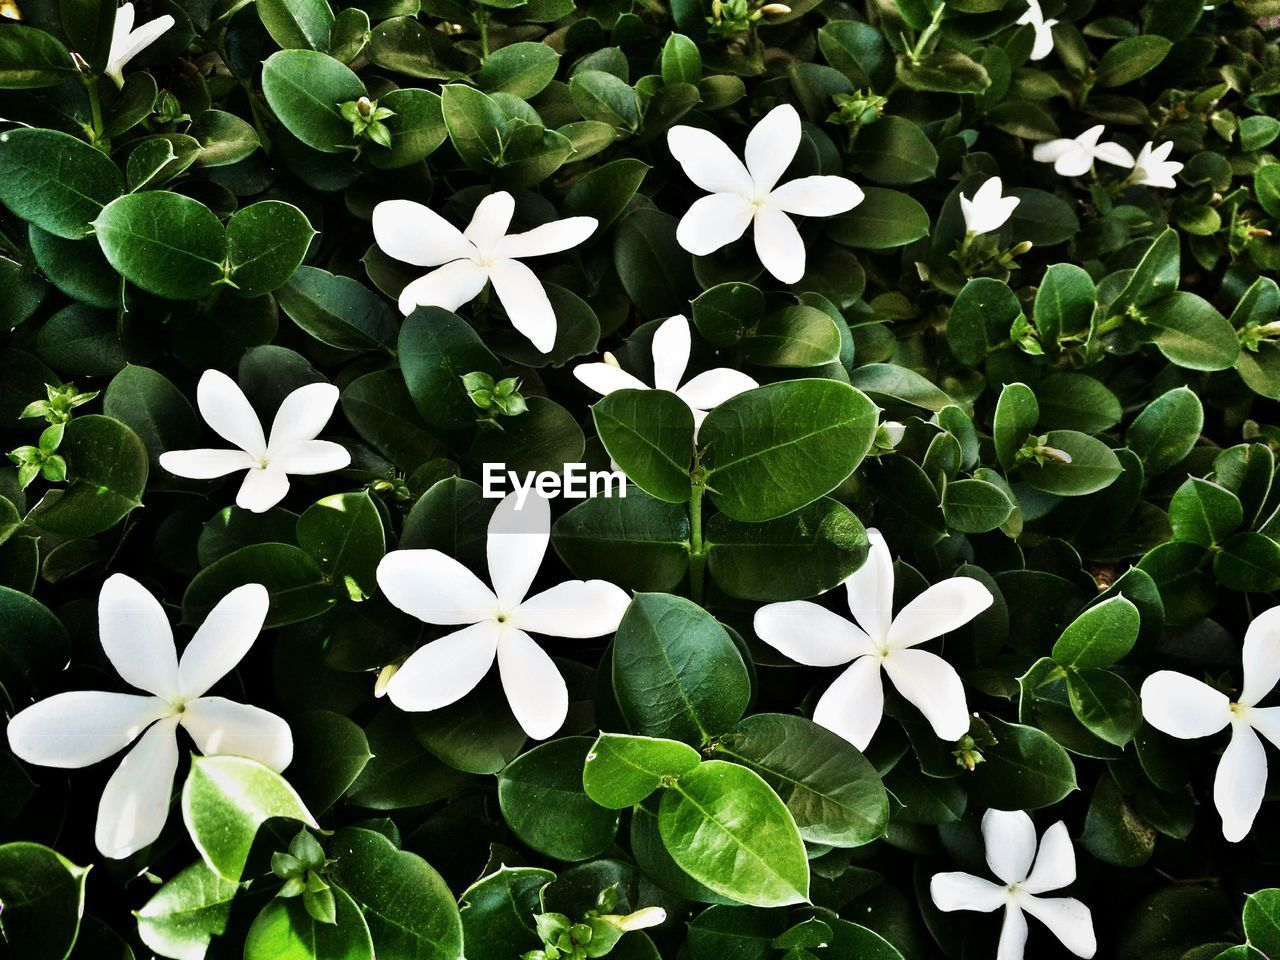 HIGH ANGLE VIEW OF WHITE FLOWERING PLANTS AND LEAVES